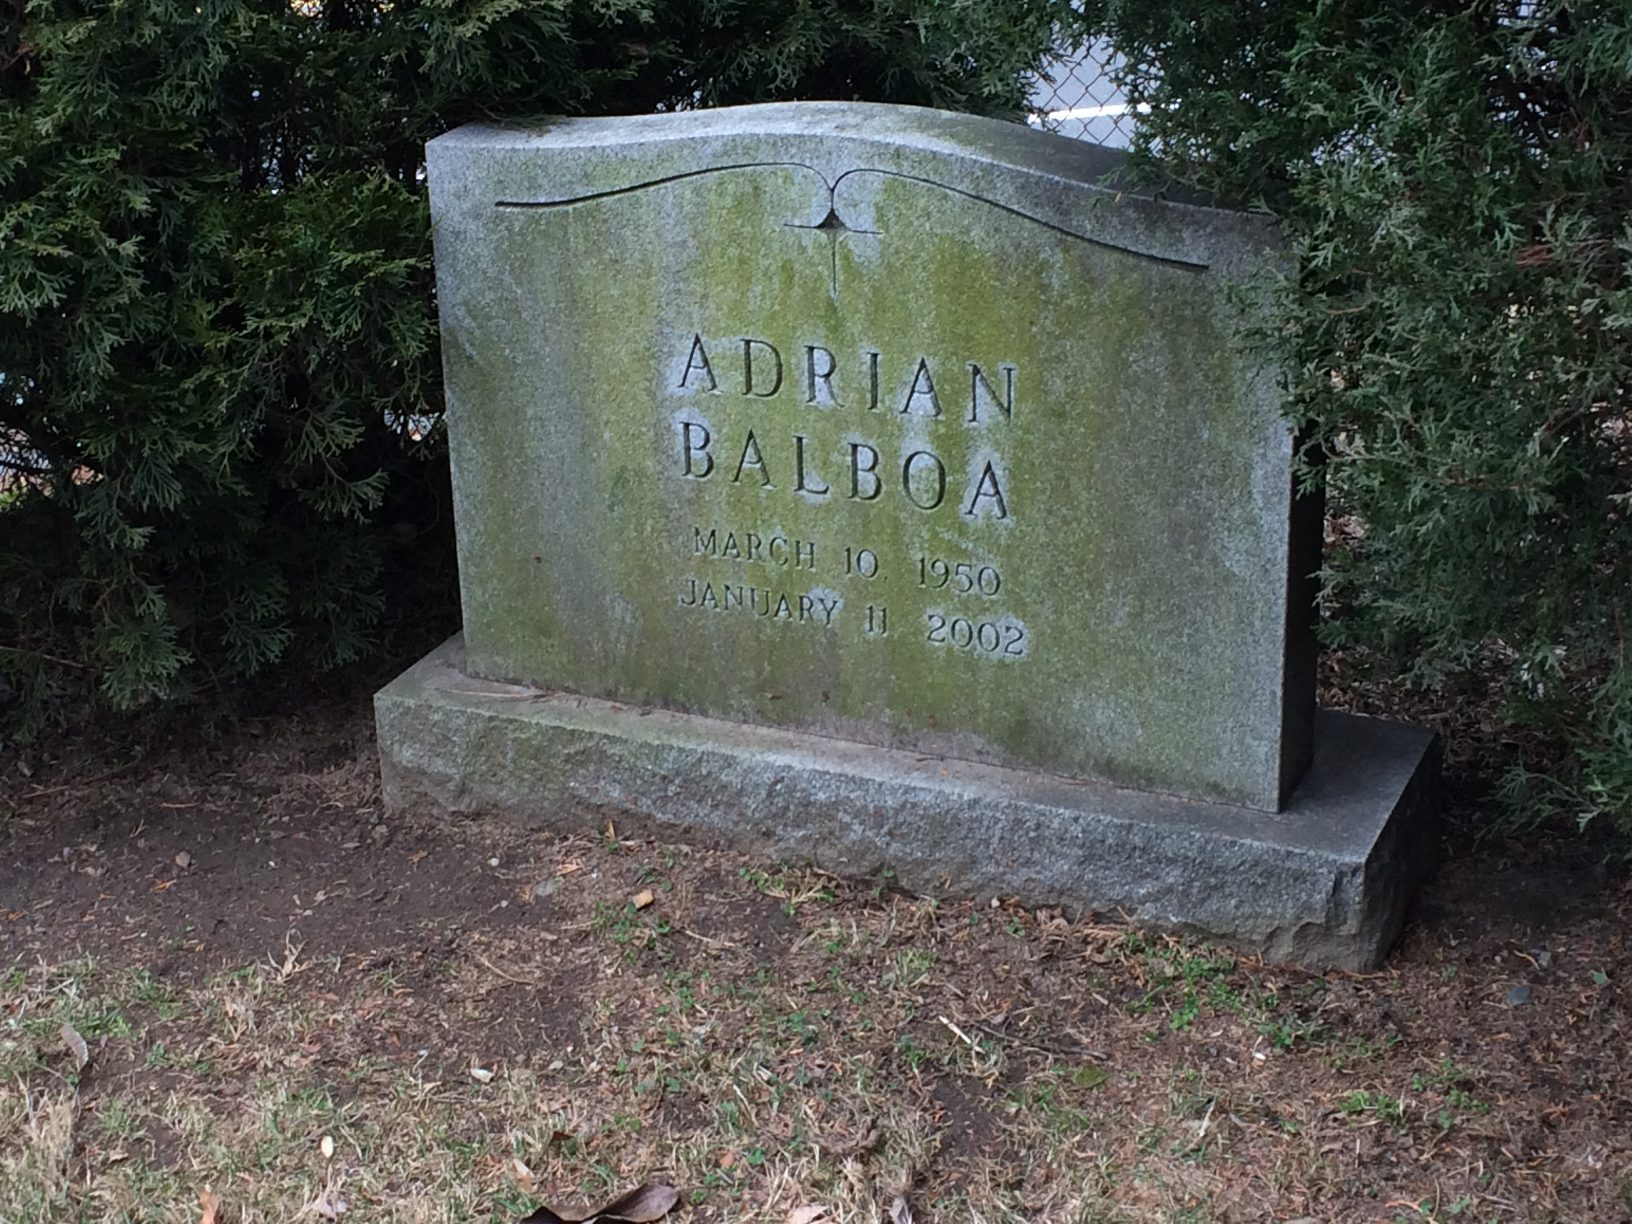 The tombstone of a beloved fictional character is one of Philadelphia secrets.